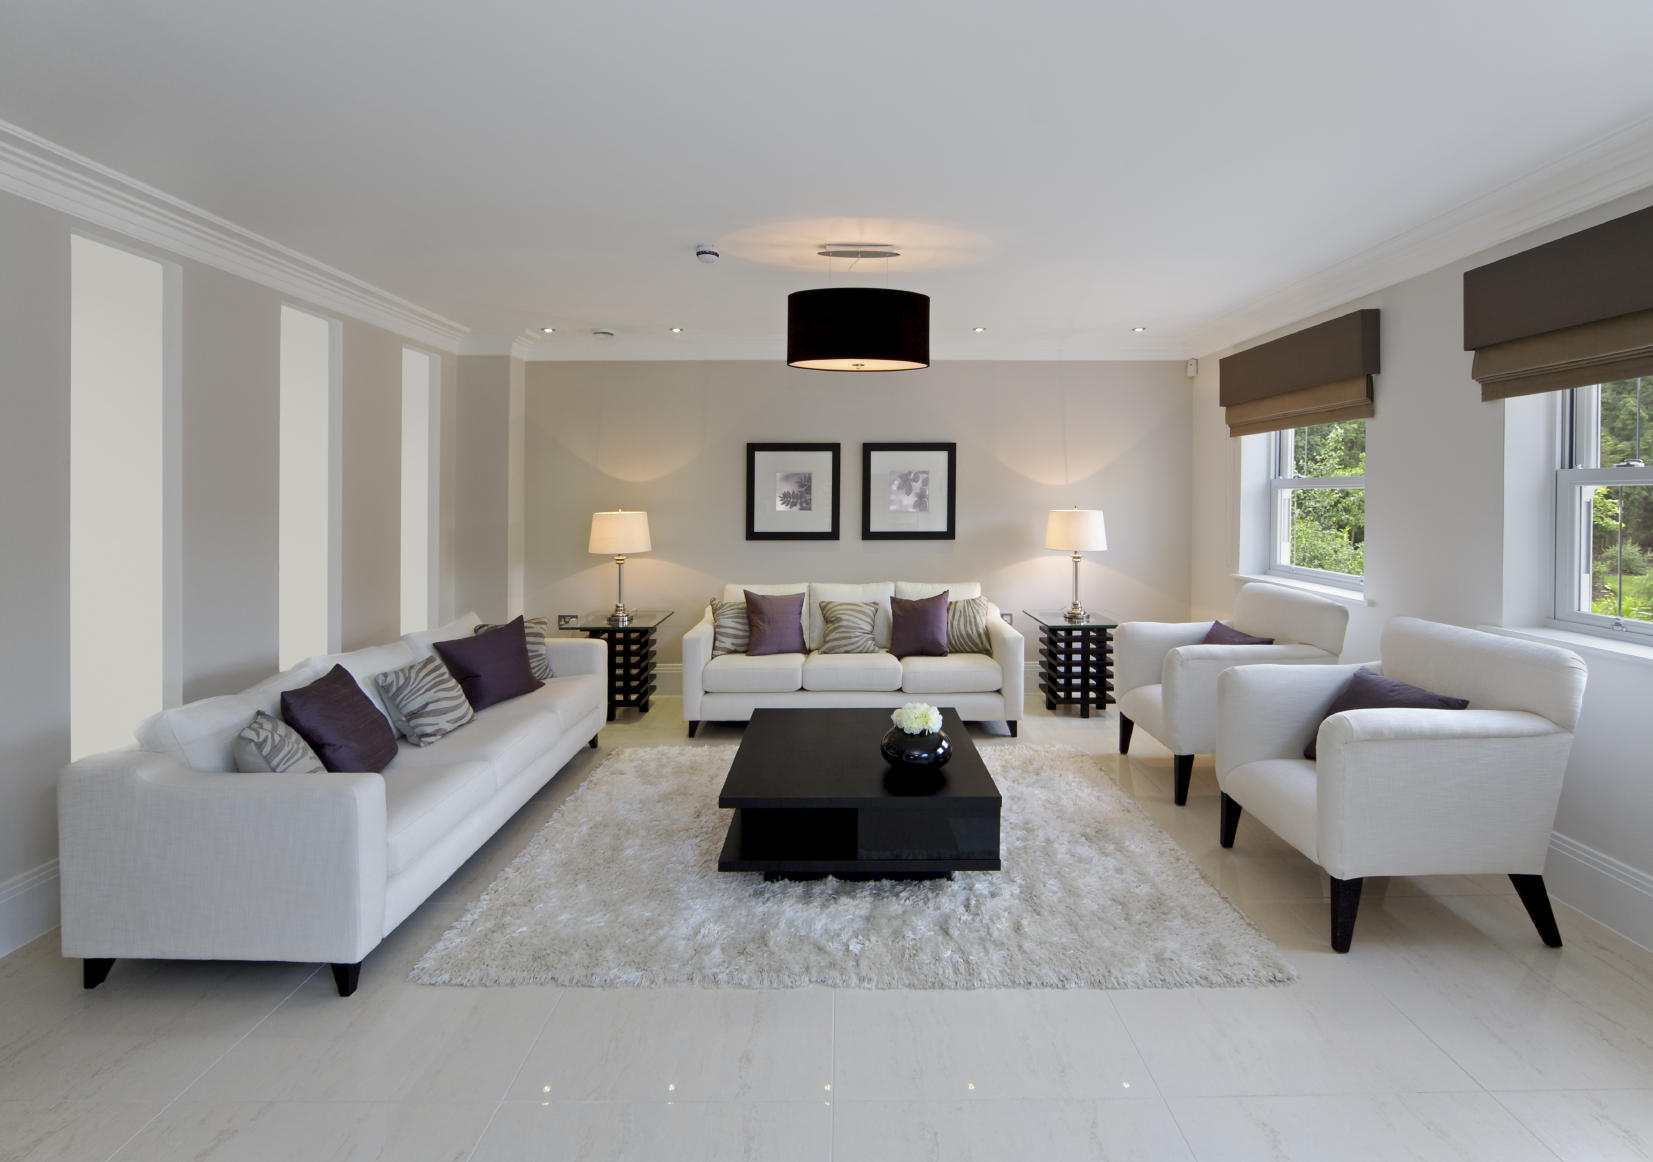 All white living room adds high contrast via central twotier jet